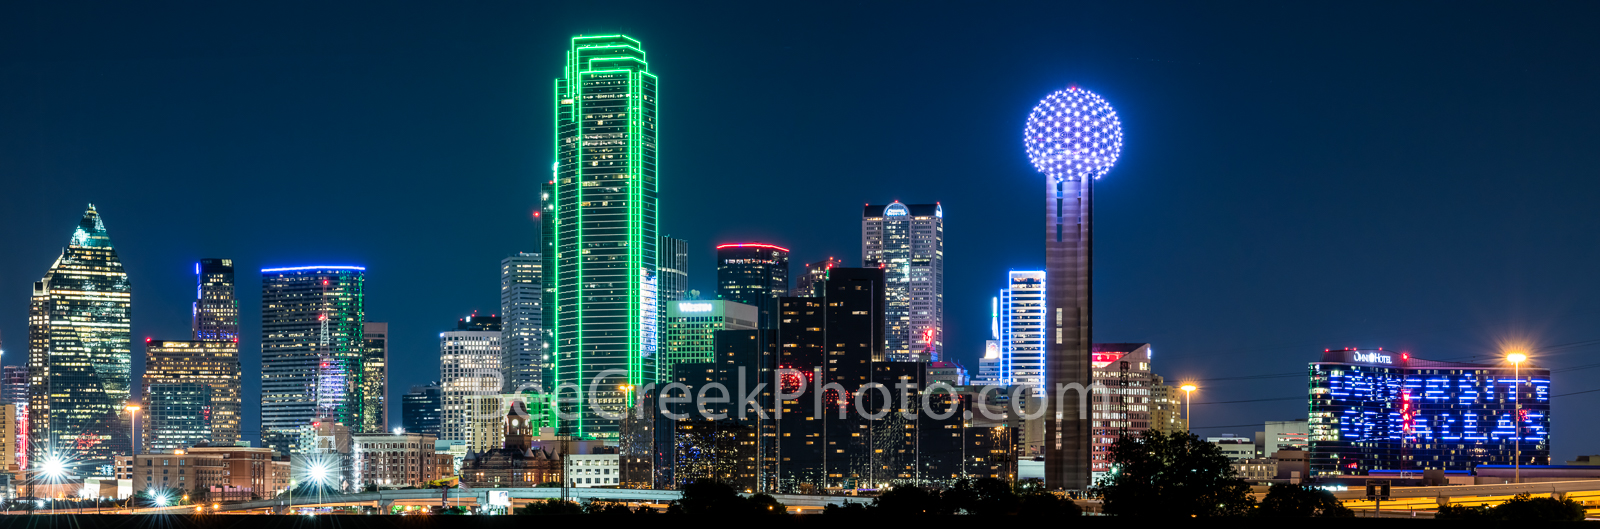 Dallas Skyline Pano Night 0052 - This is an panorama of the Dallas Skyline after dark with only the light from the high rise...